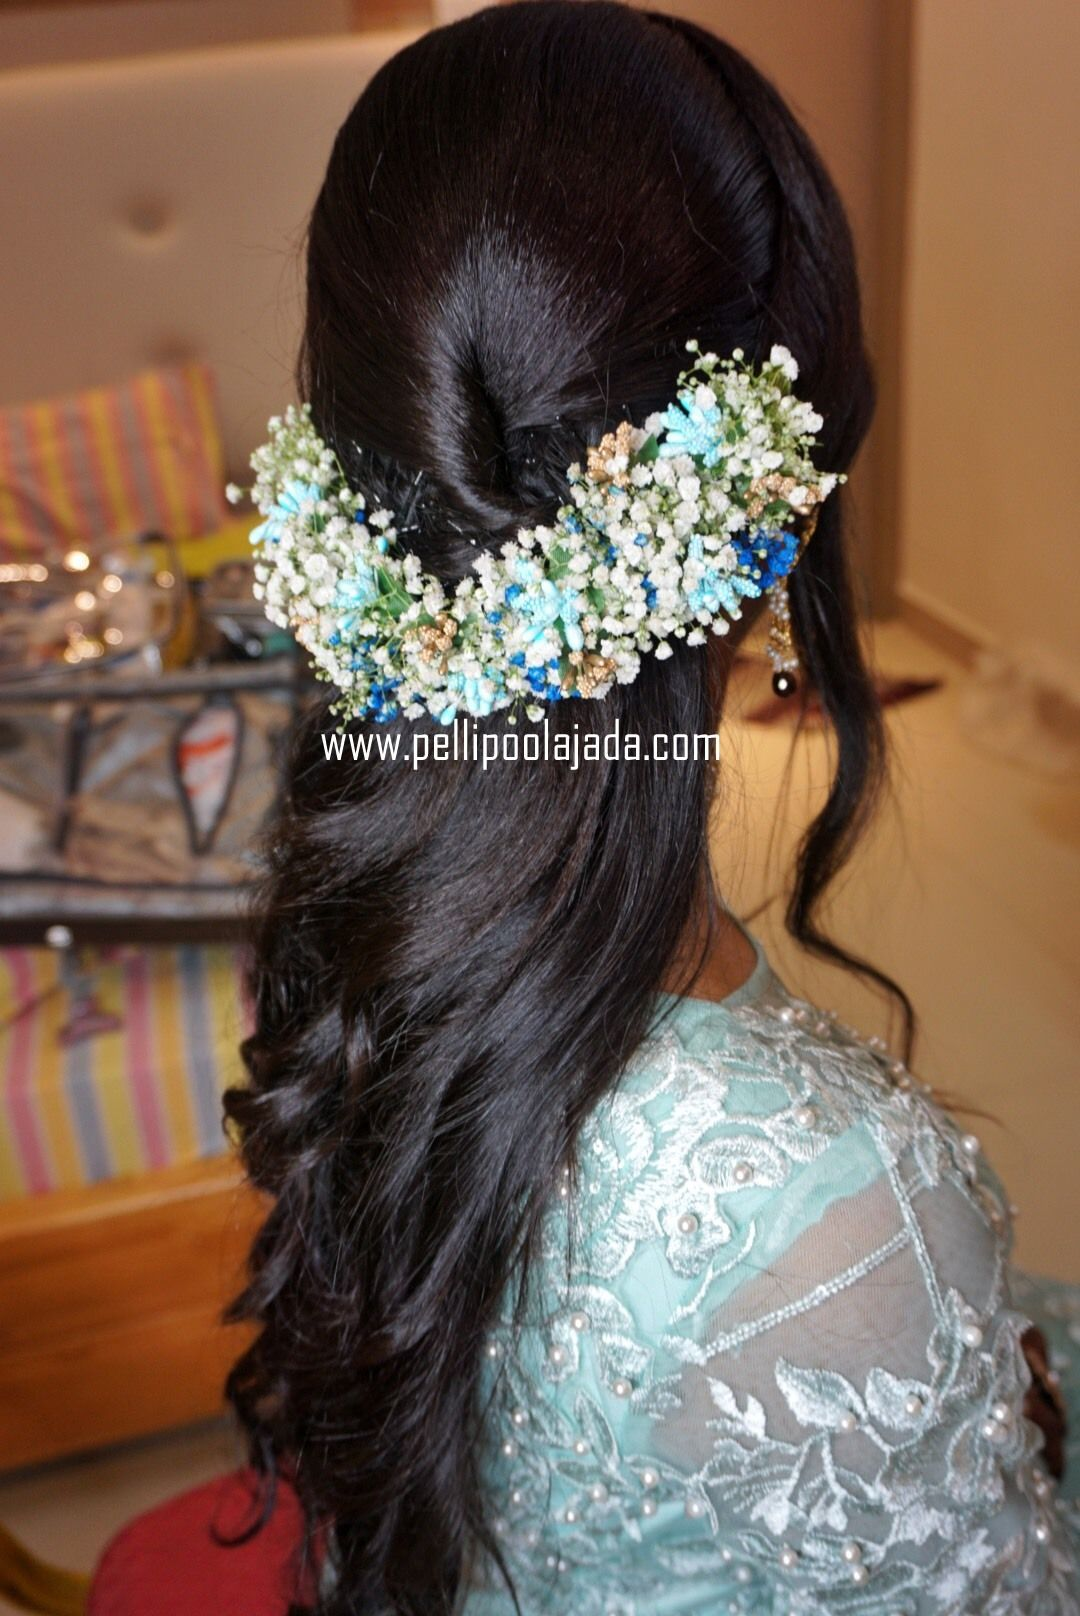 order fresh flower poolajada, bridal accessories from our